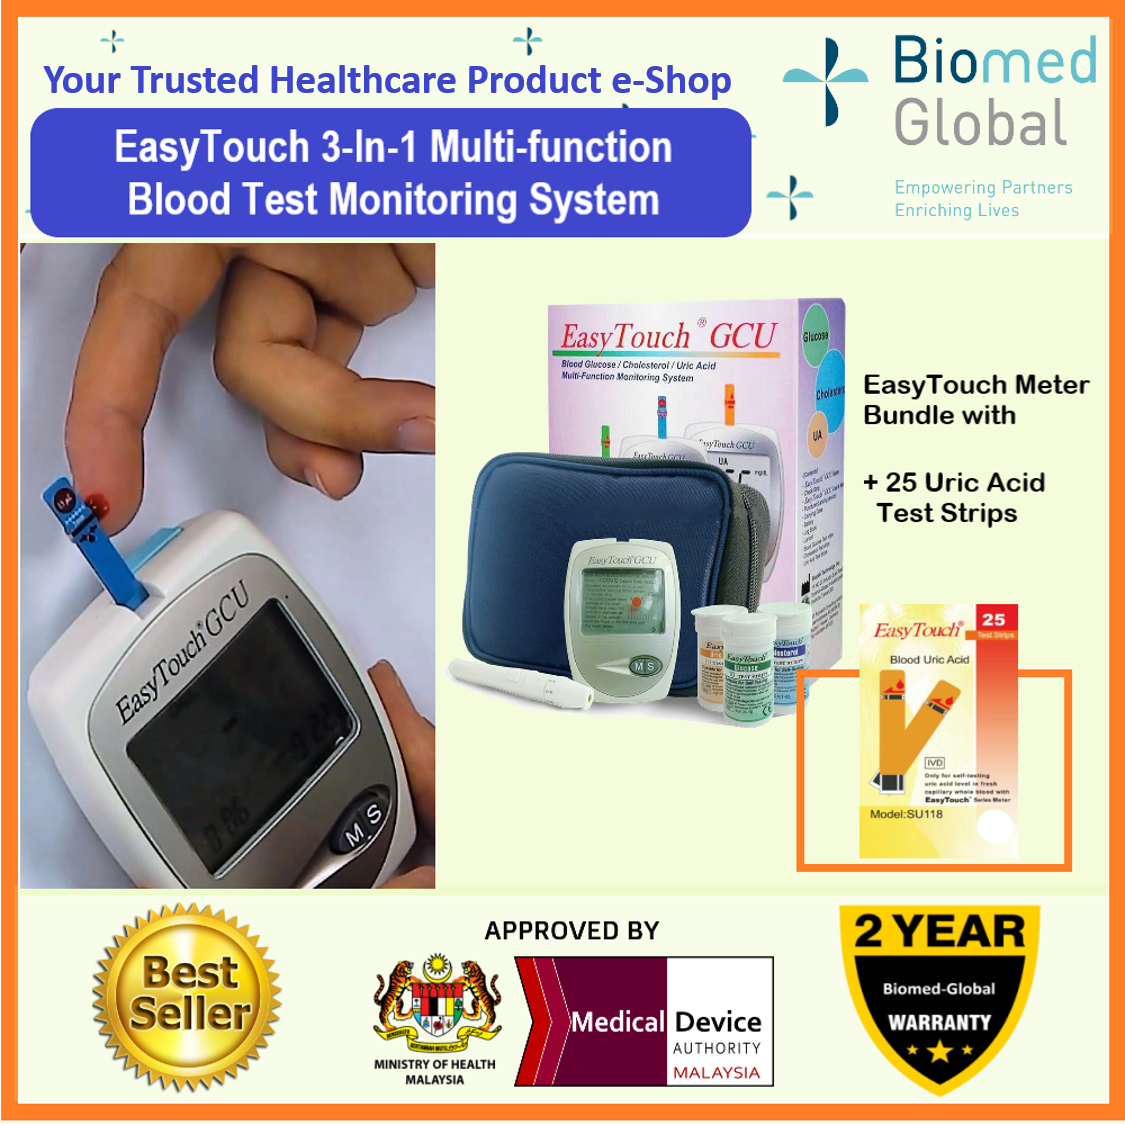 EasyTouch GCU 3-in-1 Blood Glucose, Cholesterol and Uric Acid Meter, FREE with 25 Uric Acid Test Strips (BUNDLE PACK)